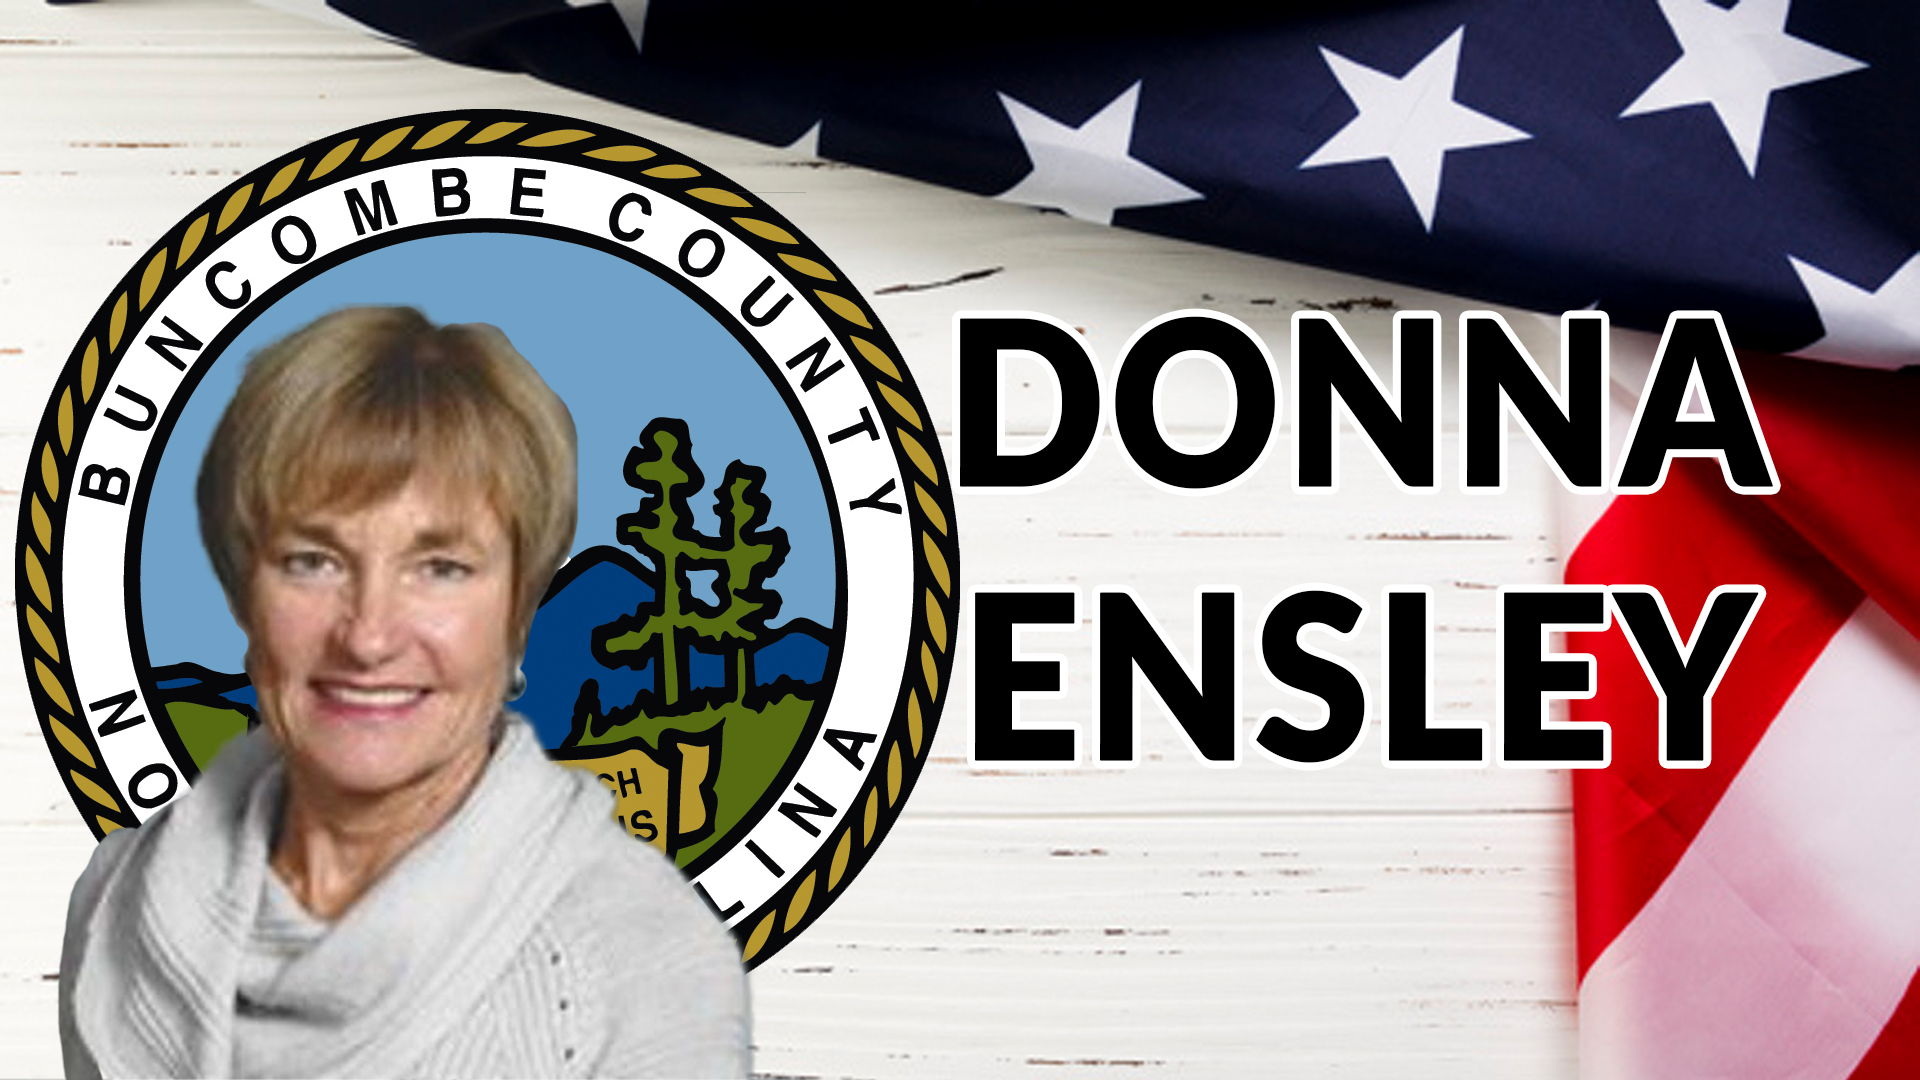 Donna Ensley, County Commissioner Candidate